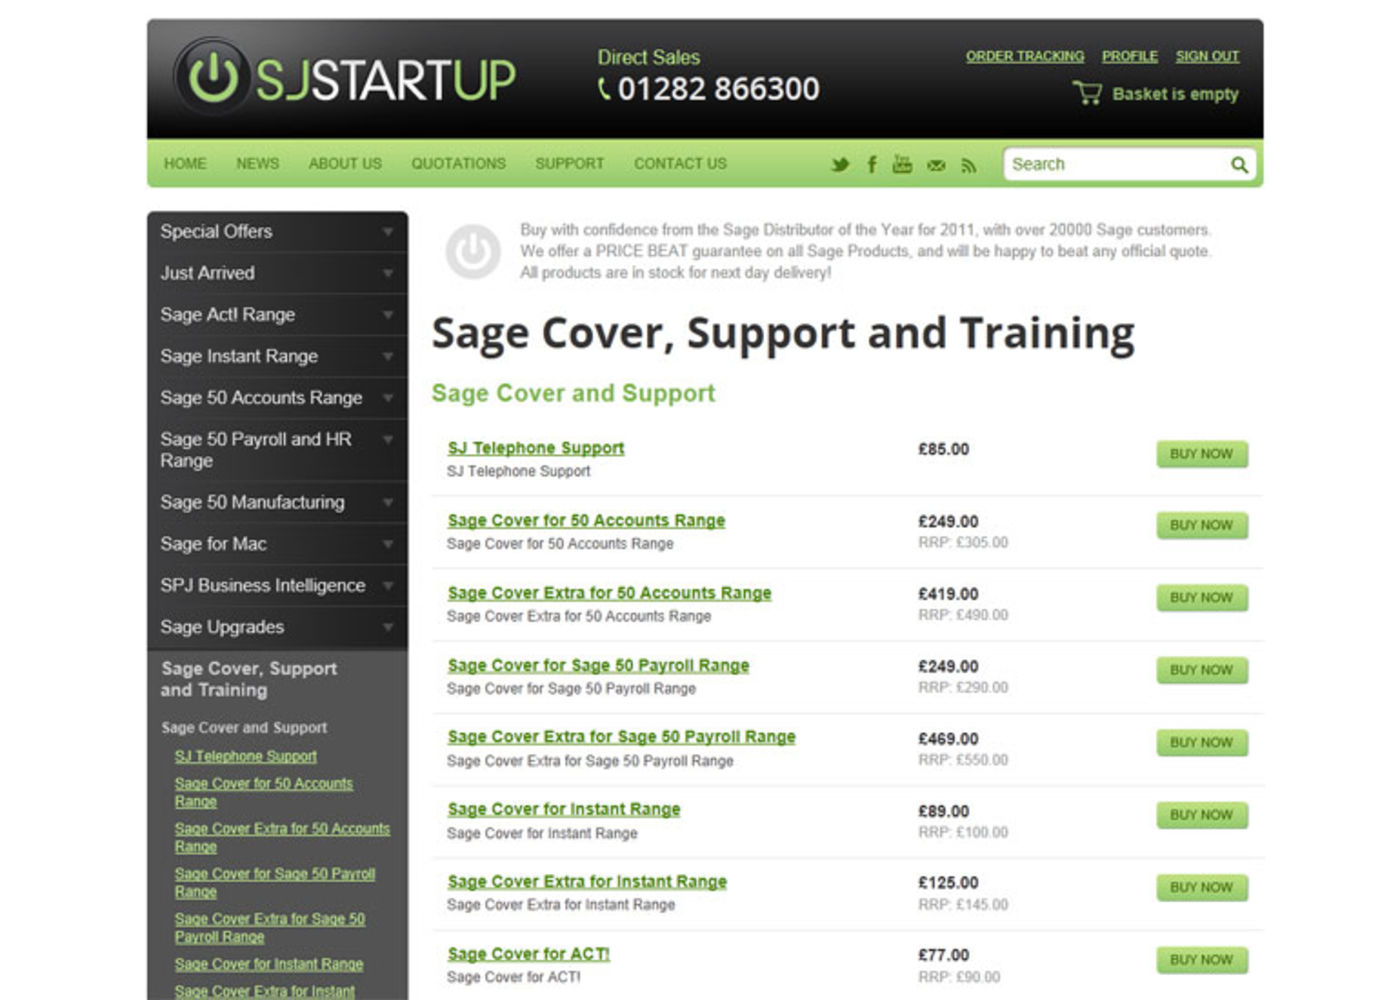 SJ Startup Page Products - SJ Startup